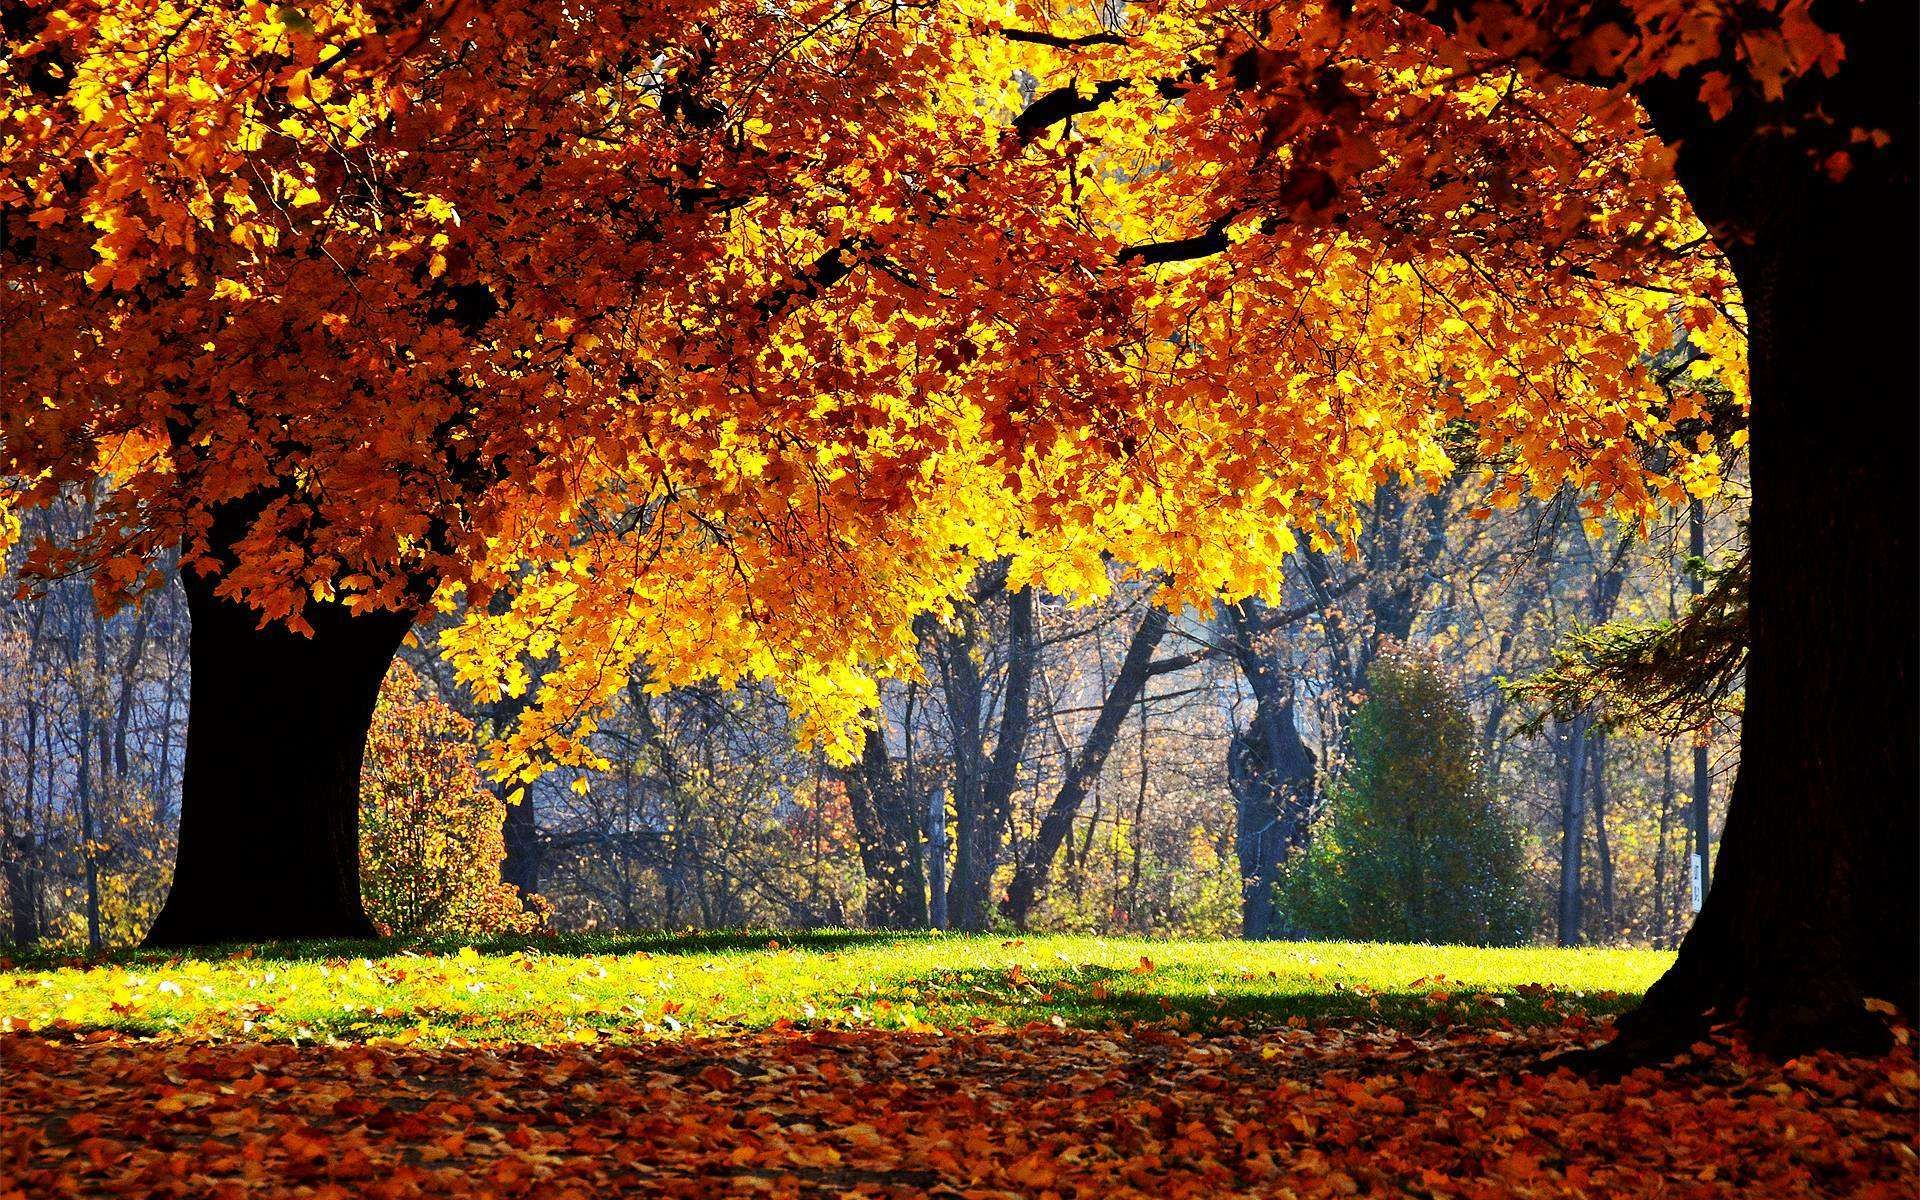 autumn wallpapers for desktop visit website for more images